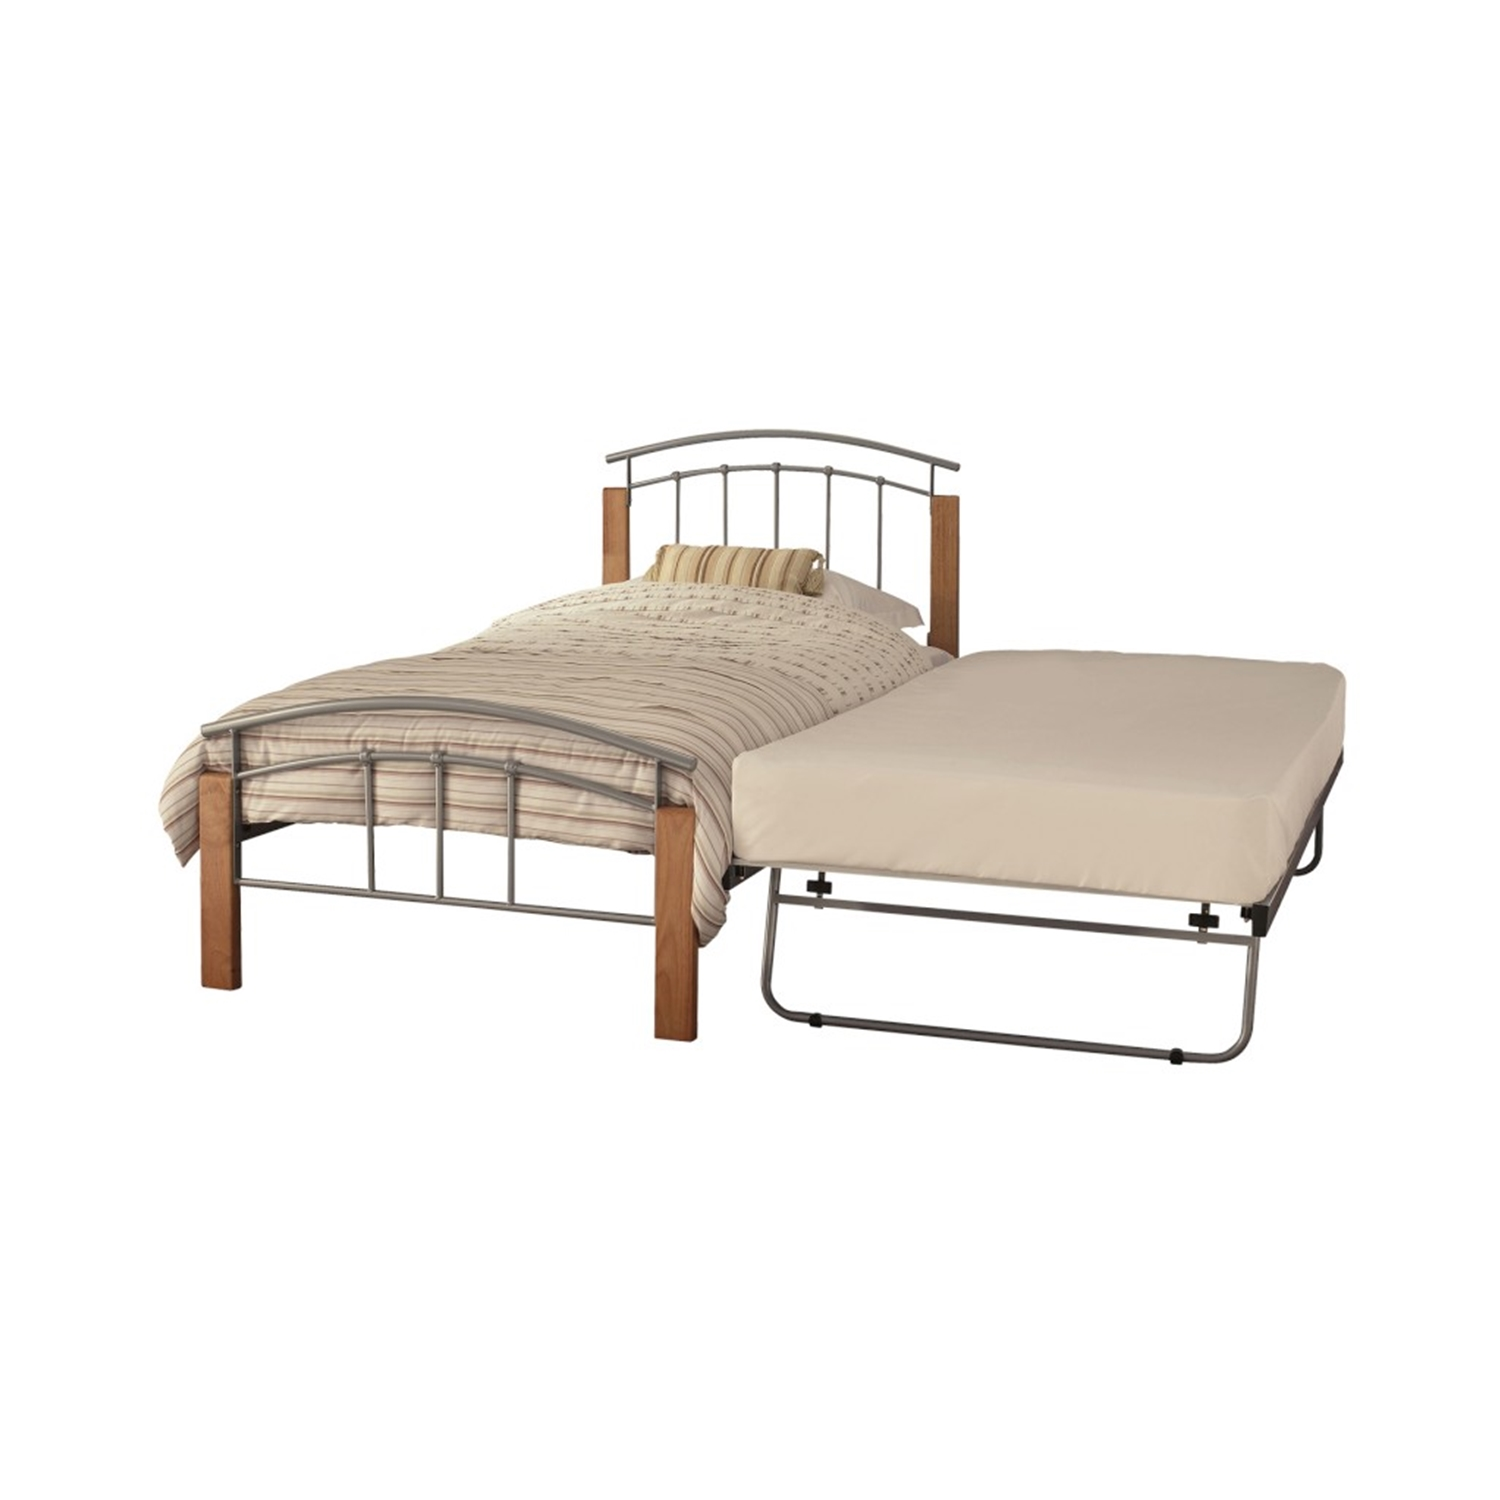 Image of Casa Tetras Single Guest Bed